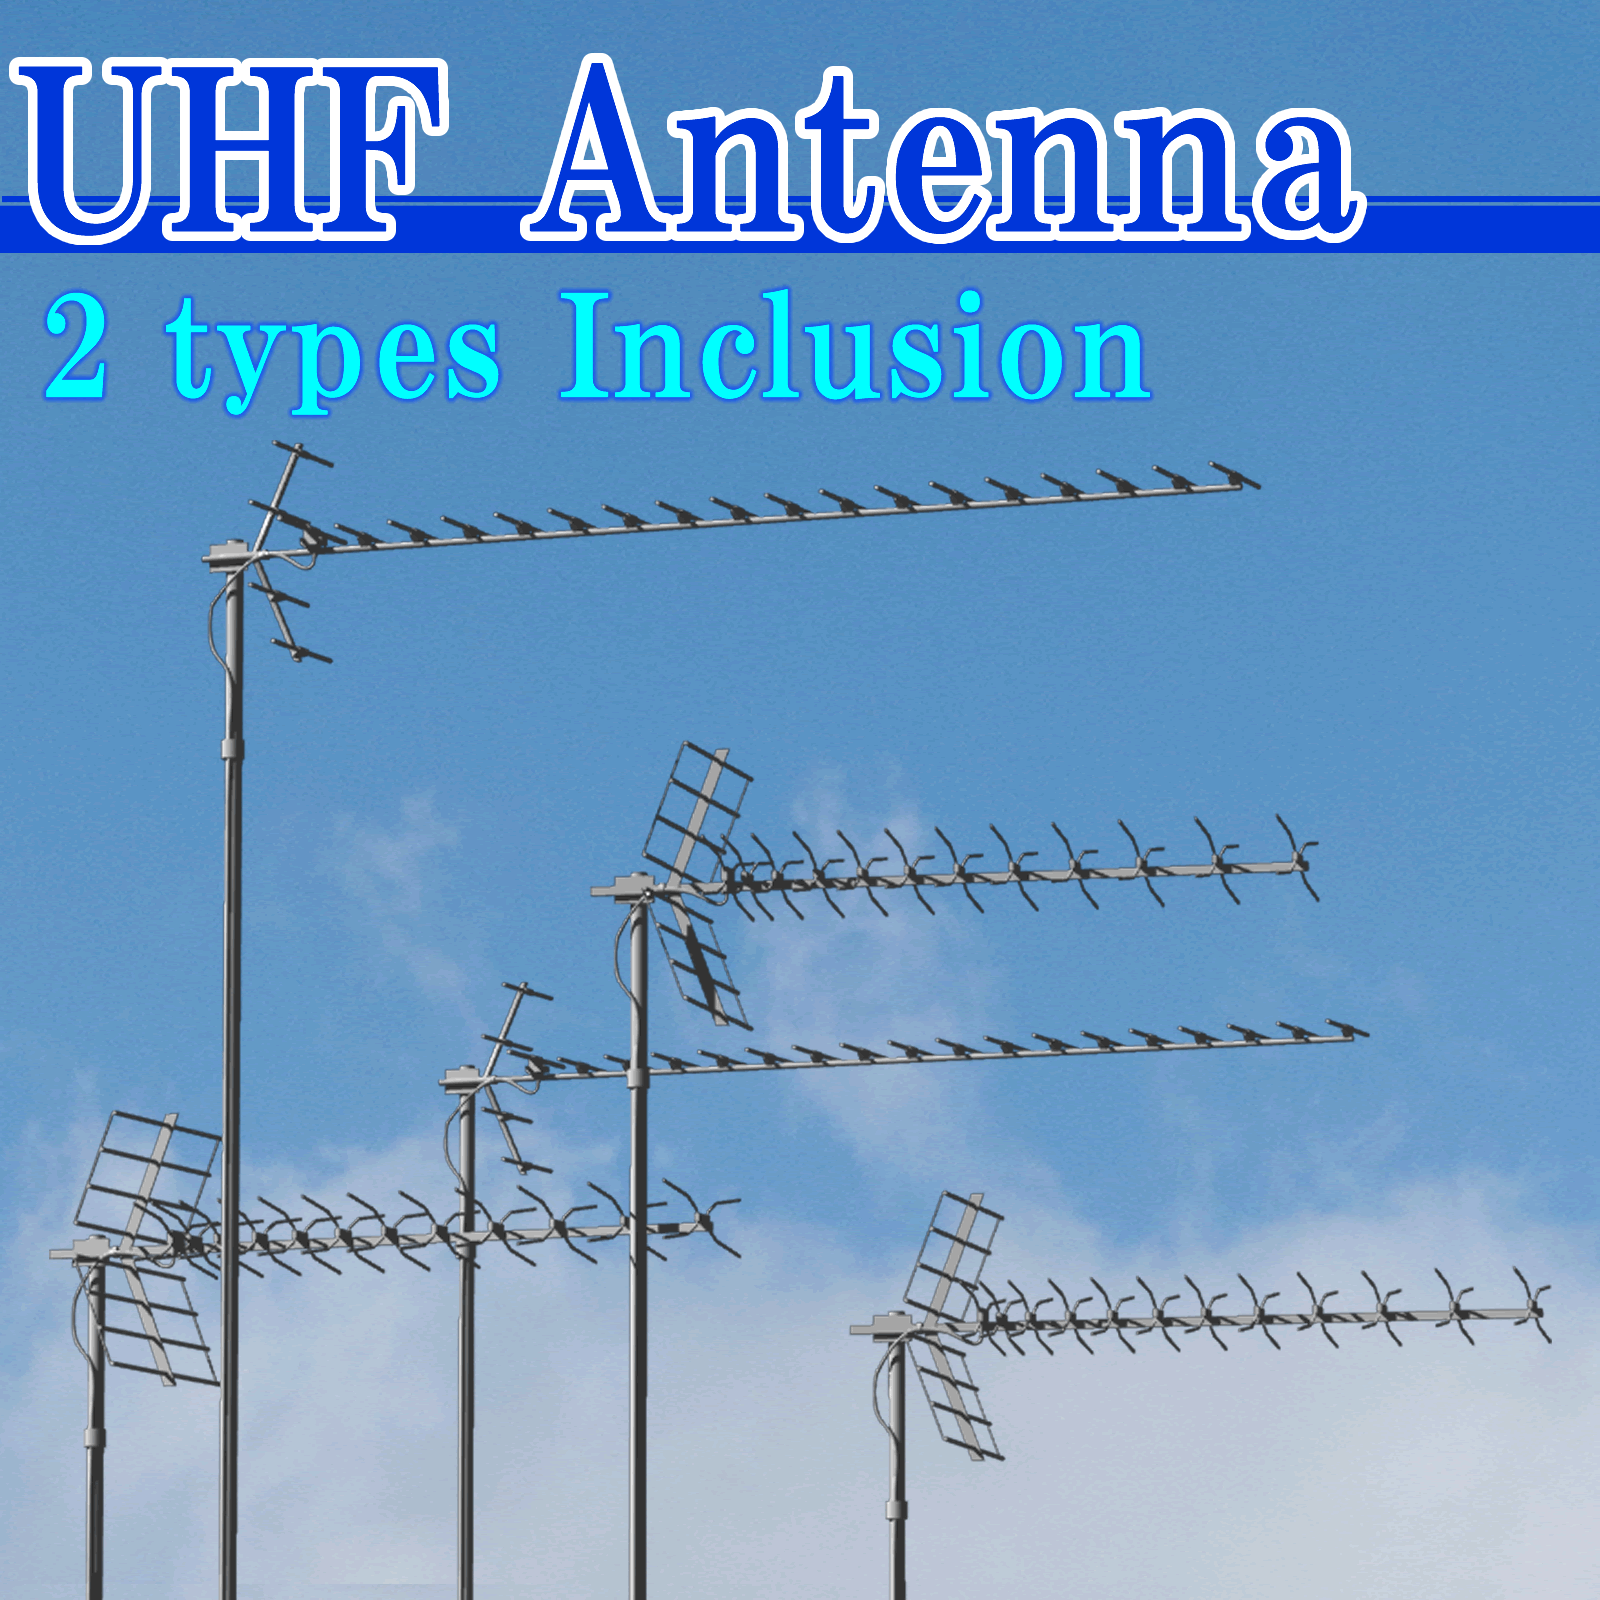 UHF Antenna 2 types Inclusion(OBJ)By x7